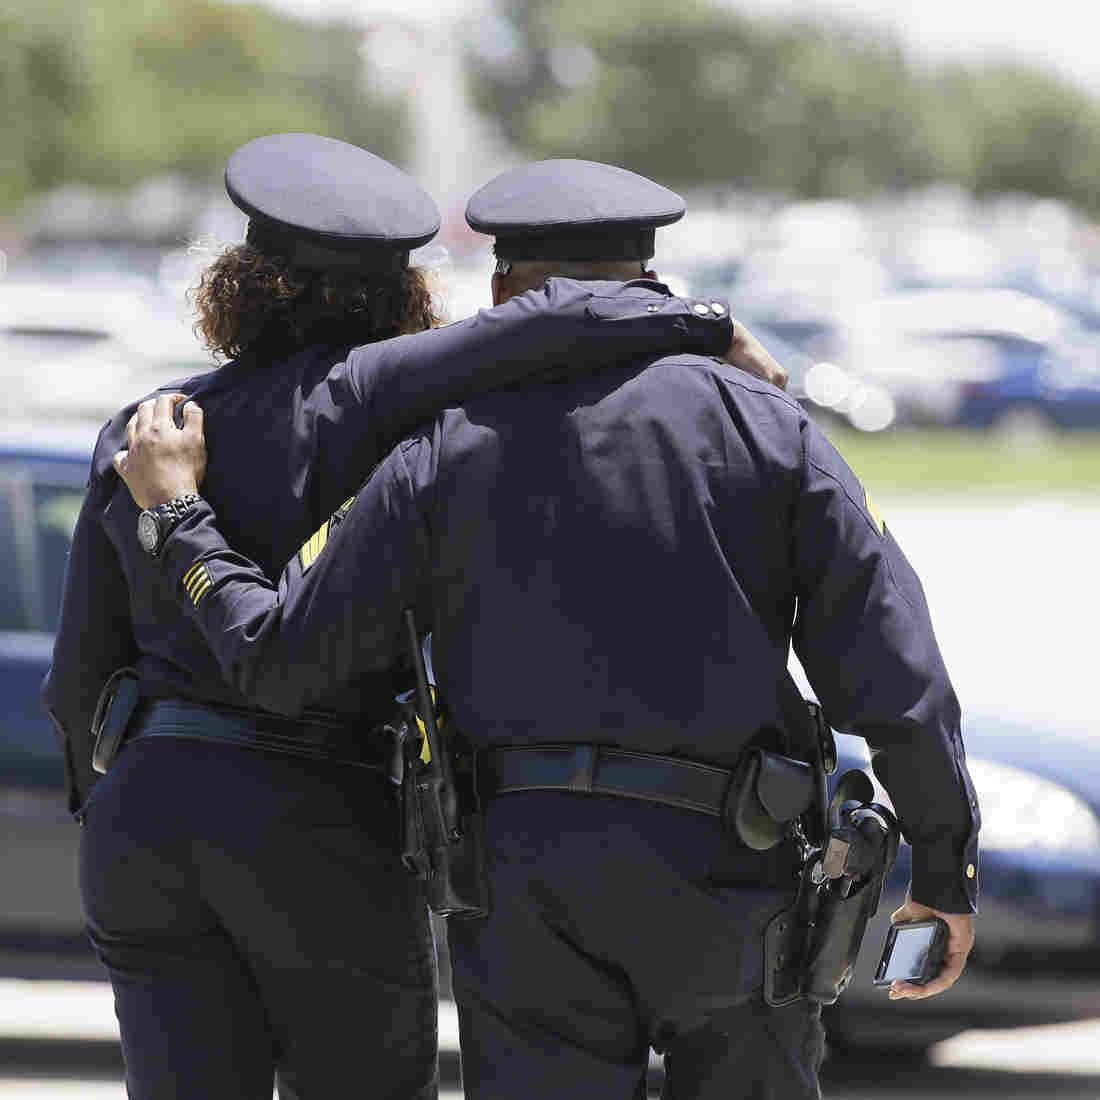 Will Dallas And Baton Rouge Set Back Police Reform Efforts